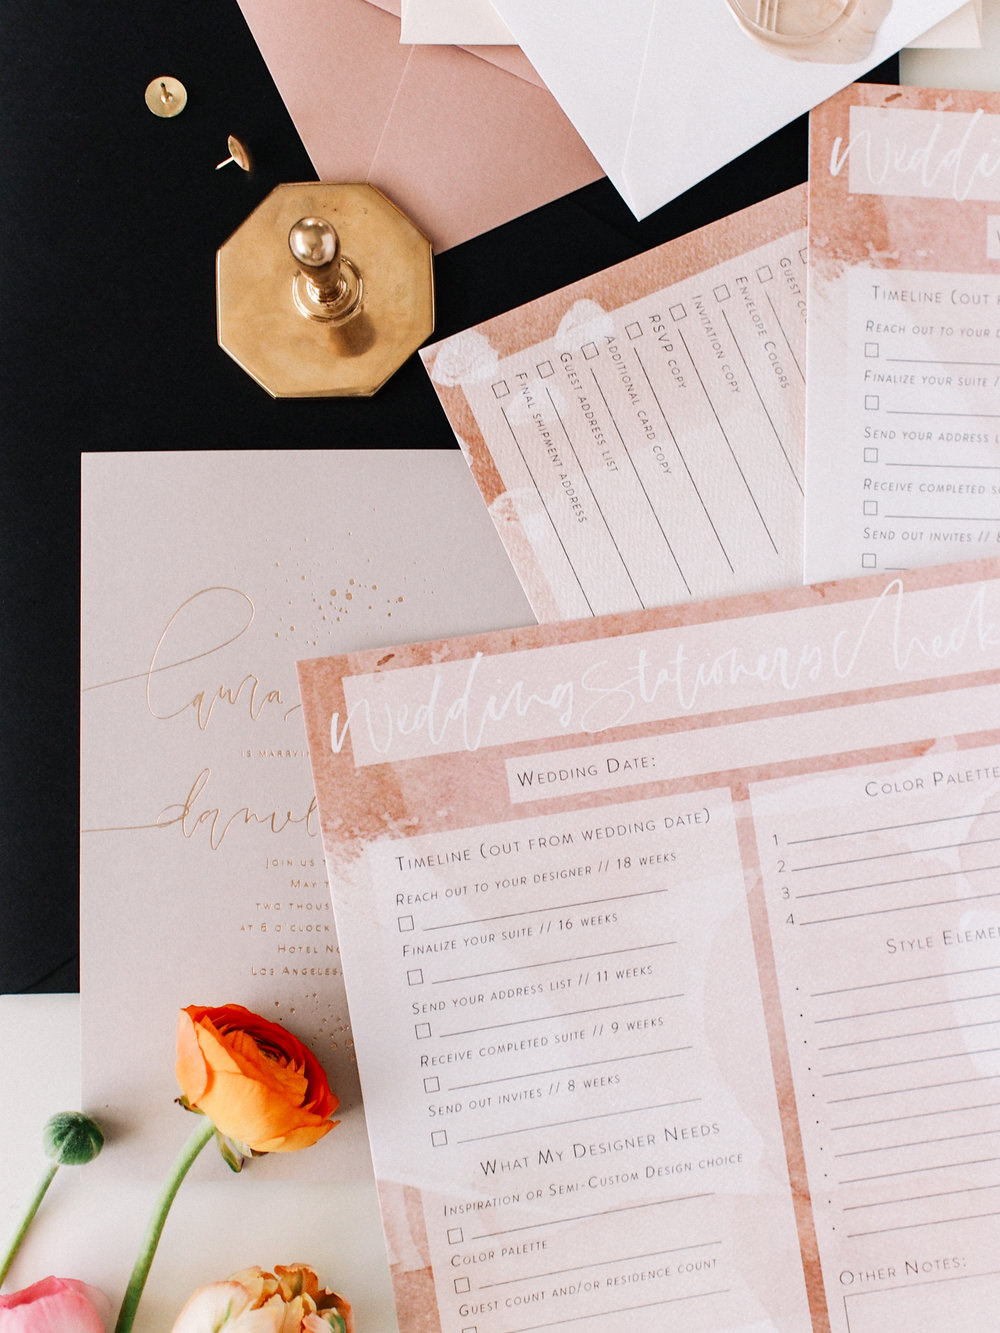 Downloadable Wedding Invitation Checklist | A Fabulous Fete